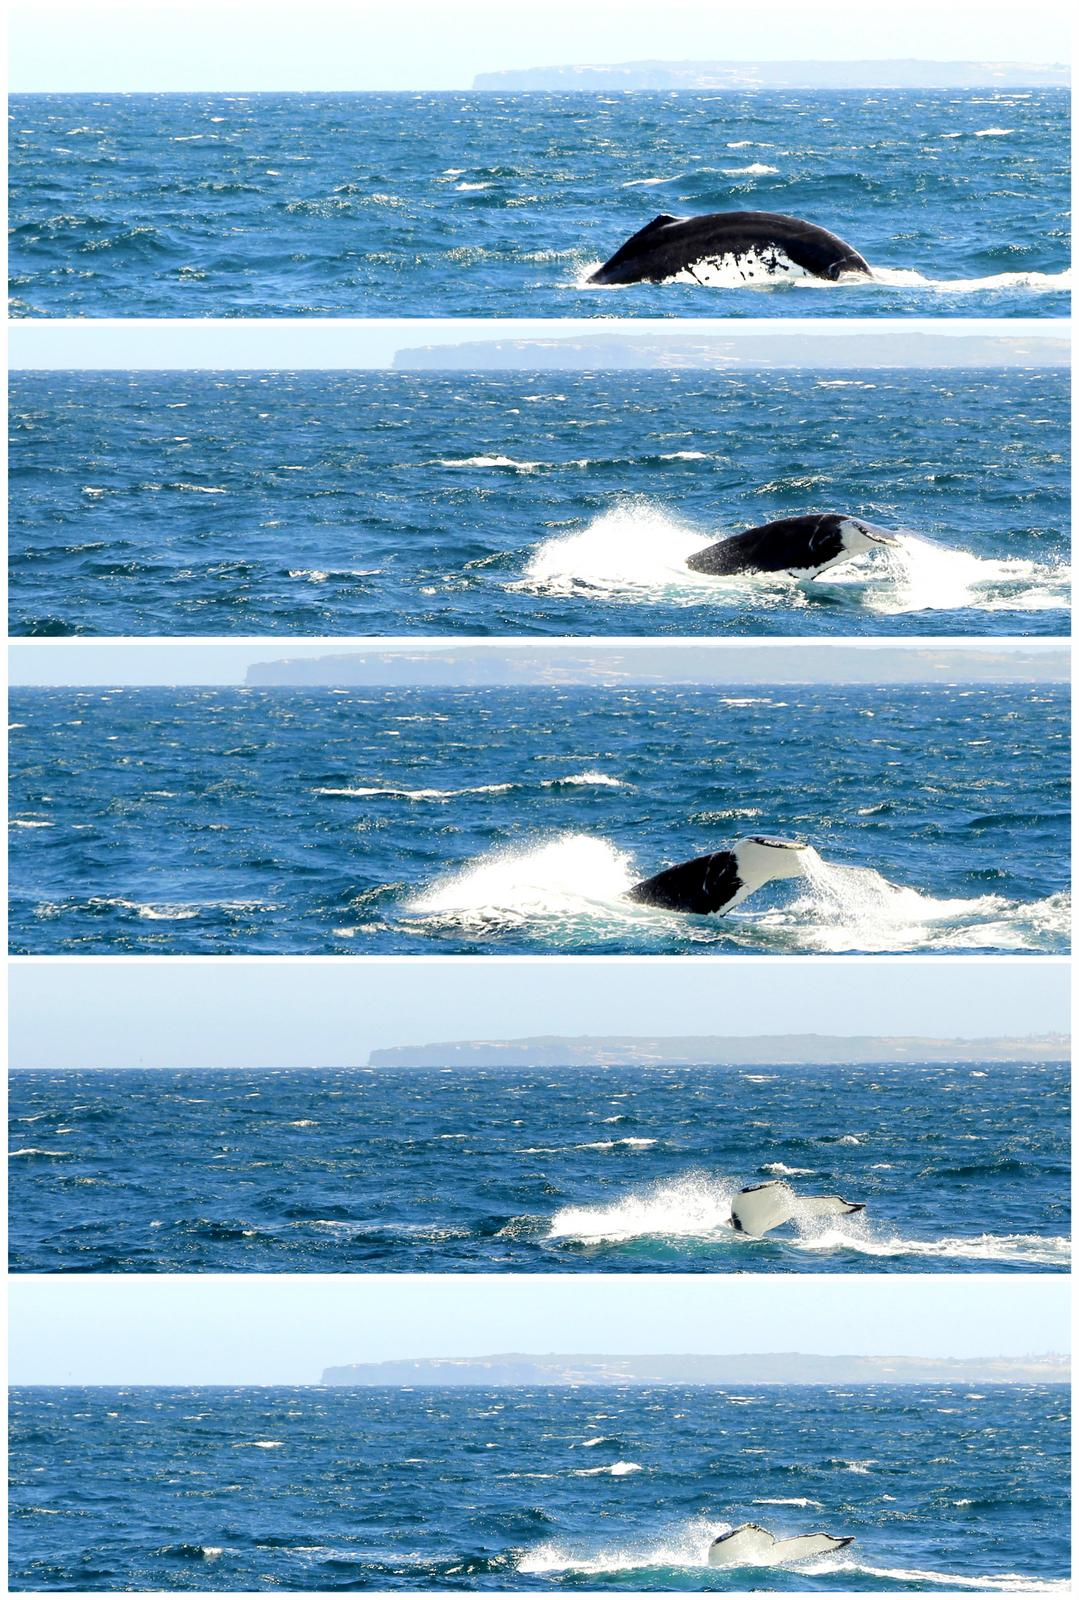 Thar she blows! A humpback plunging into the blues